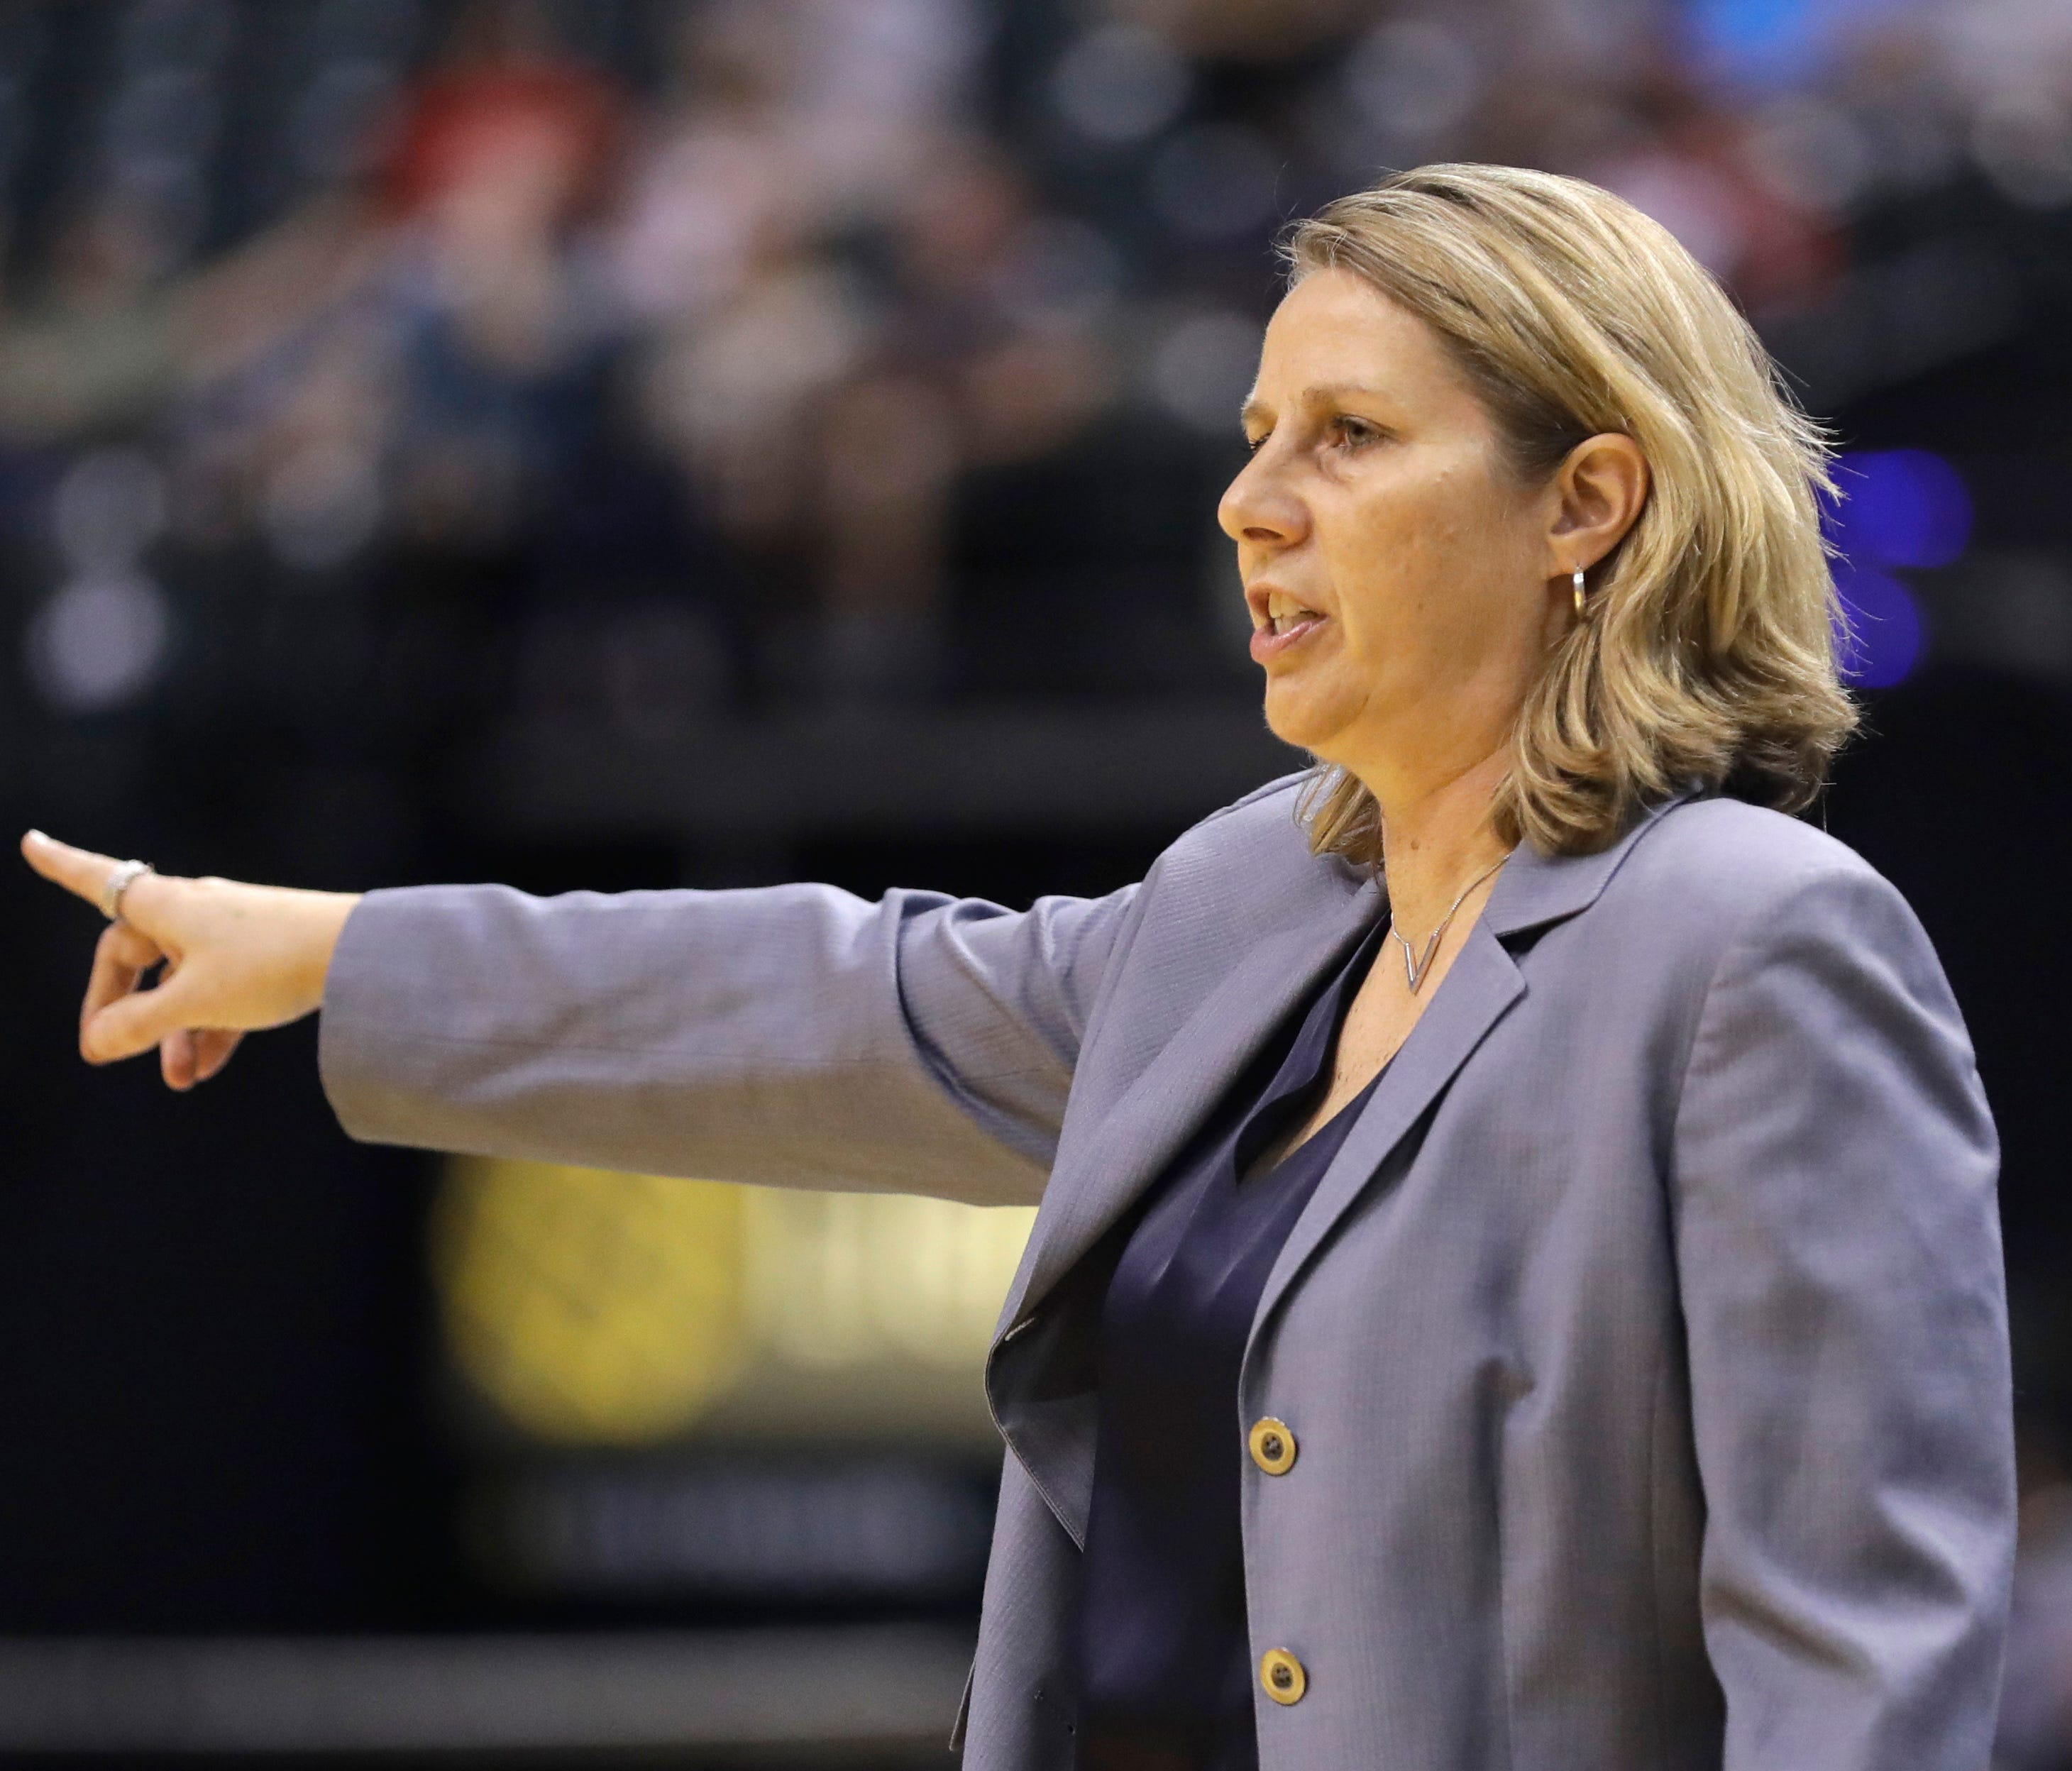 Minnesota Lynx coach Cheryl Reeve calls a play during the first half of the team's WNBA basketball game against the Indiana Fever, Wednesday, Aug. 30, 2017, in Indianapolis. (AP Photo/Darron Cummings)